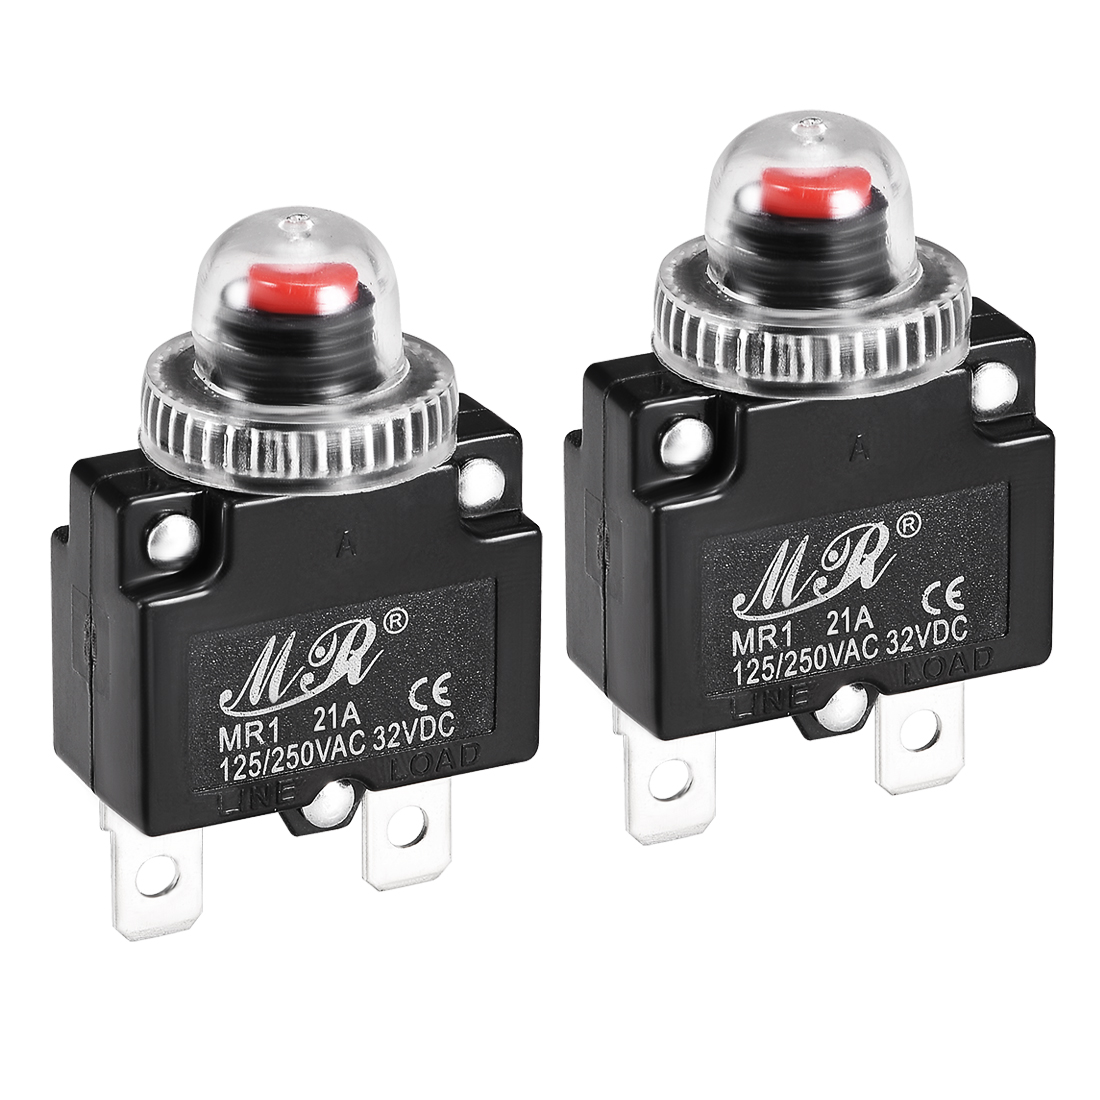 2 Pcs 21A 125/250V Push Button Reset Overload Protector Thermal Circuit Breaker